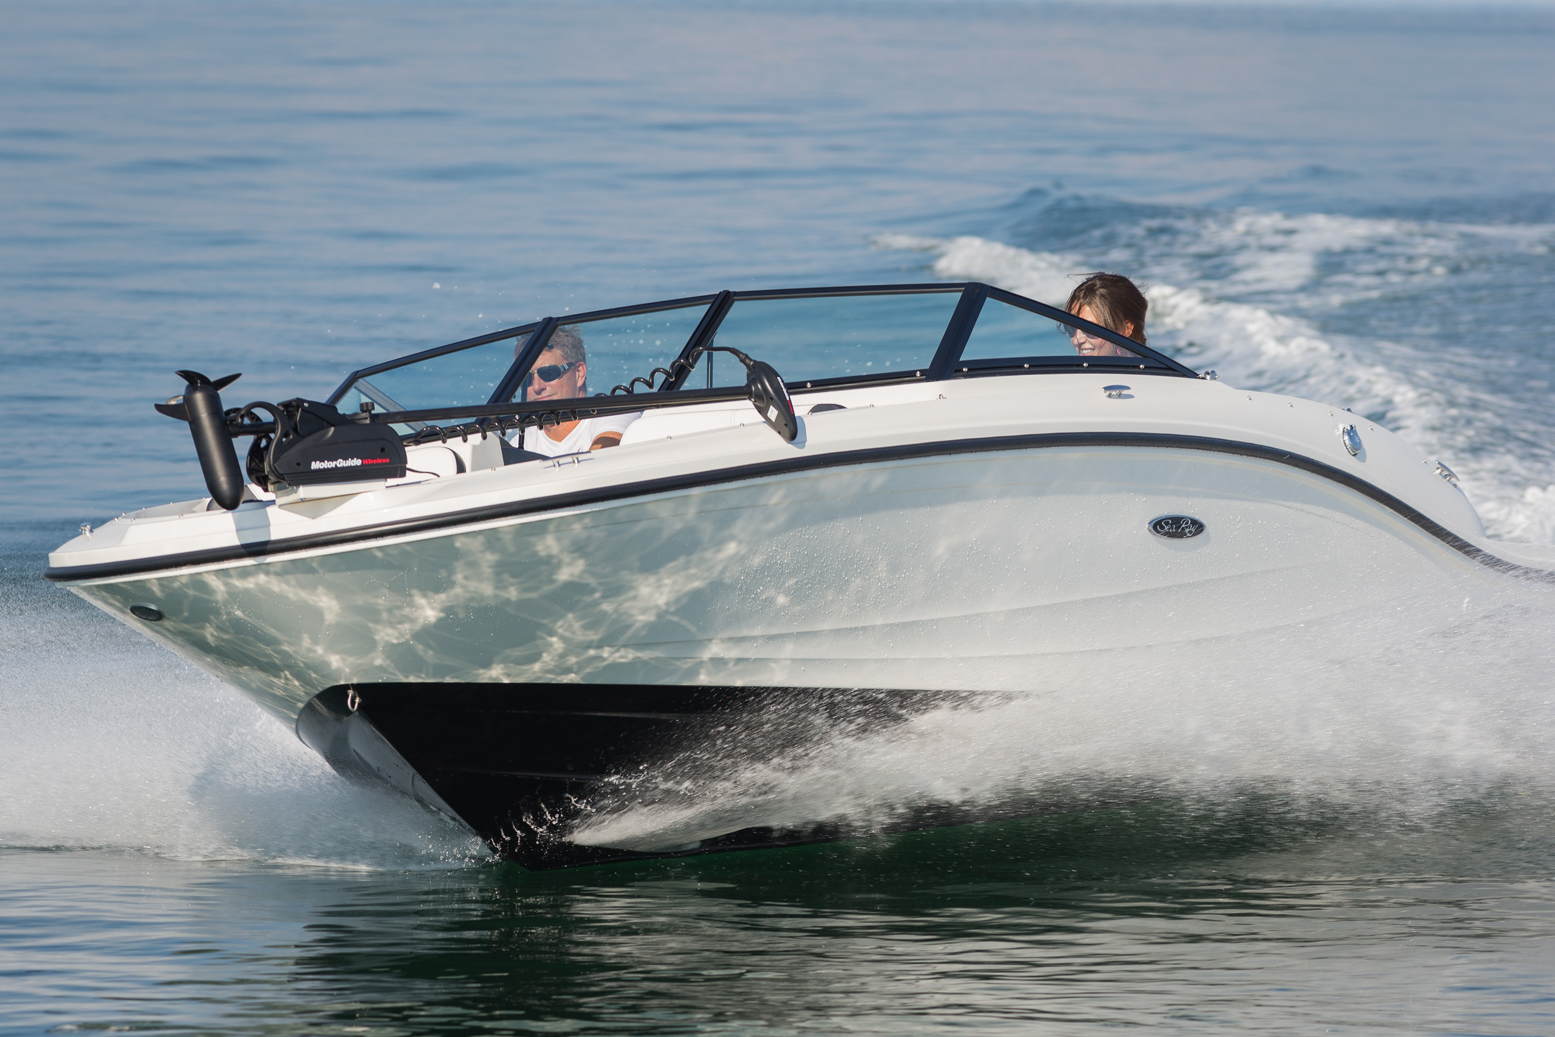 Motomar international sea ray 190 spxe ob for Sea ray fish